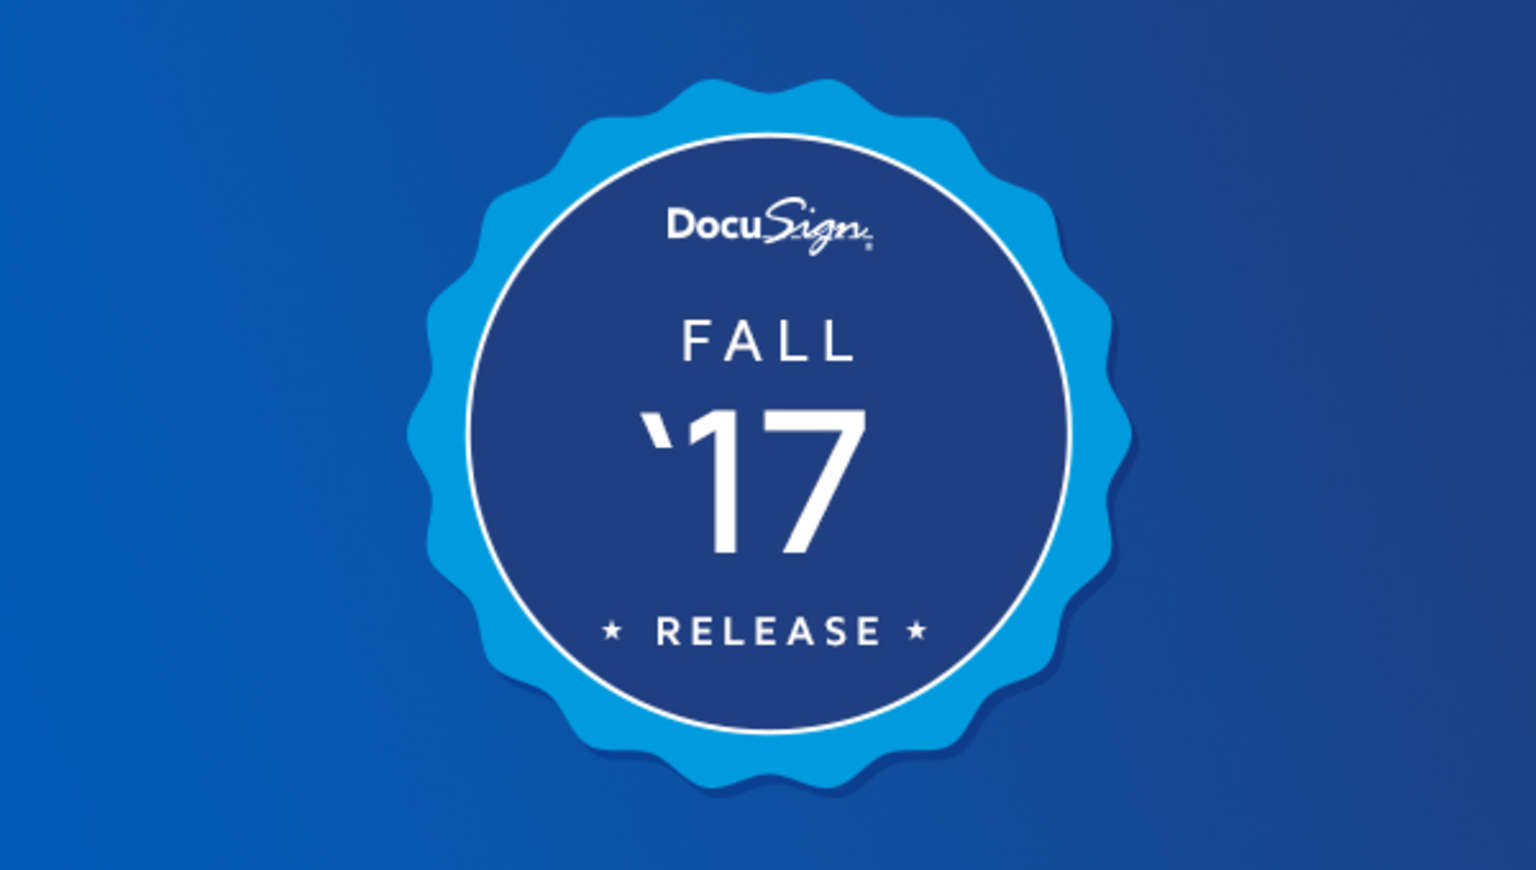 Comments & other new features highlight latest DocuSign release